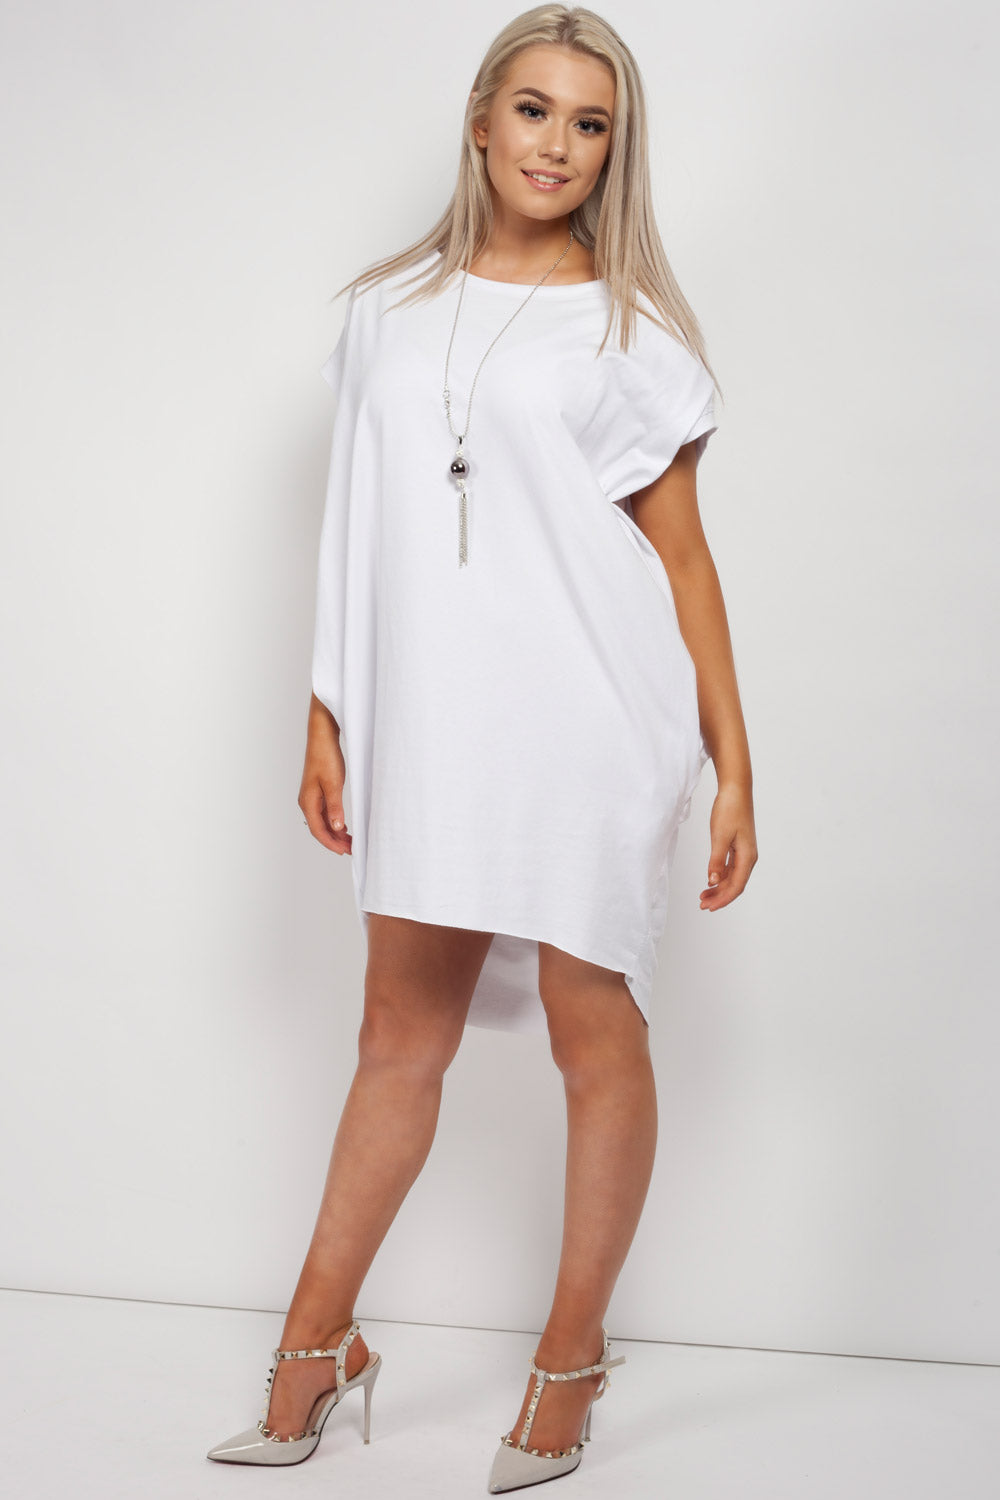 made in italy oversized top white